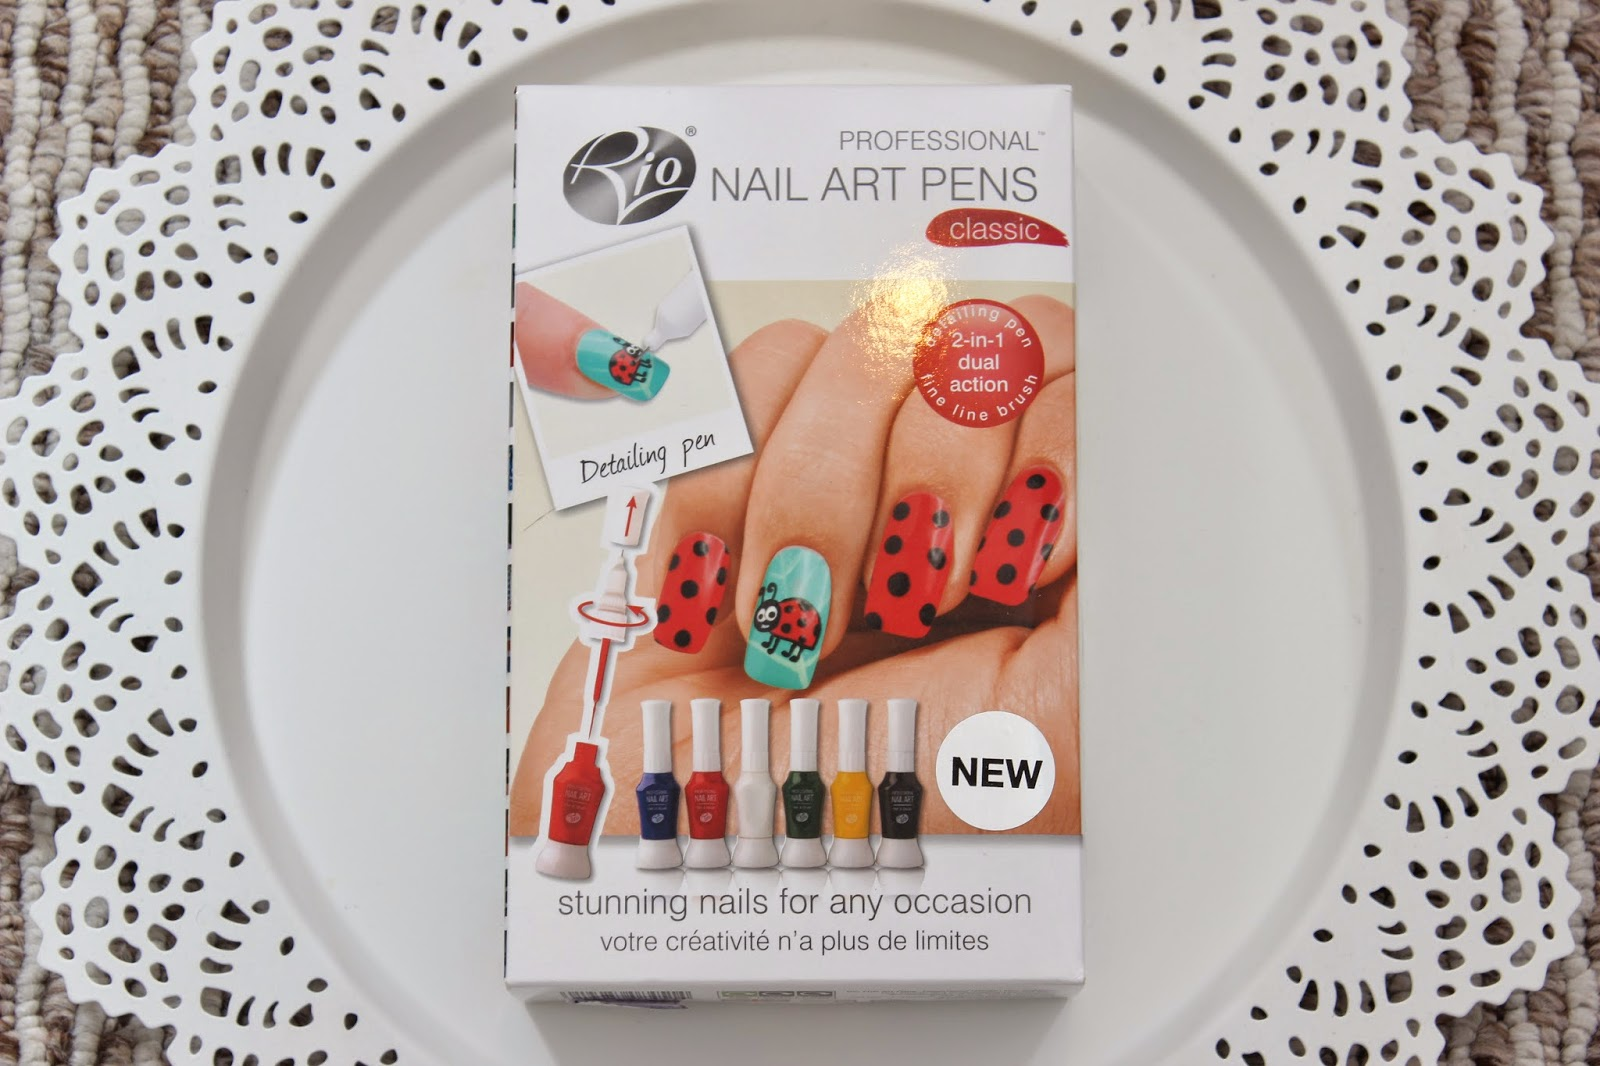 Rio Nail Art Pens Review Giveaway British Beauty Addict